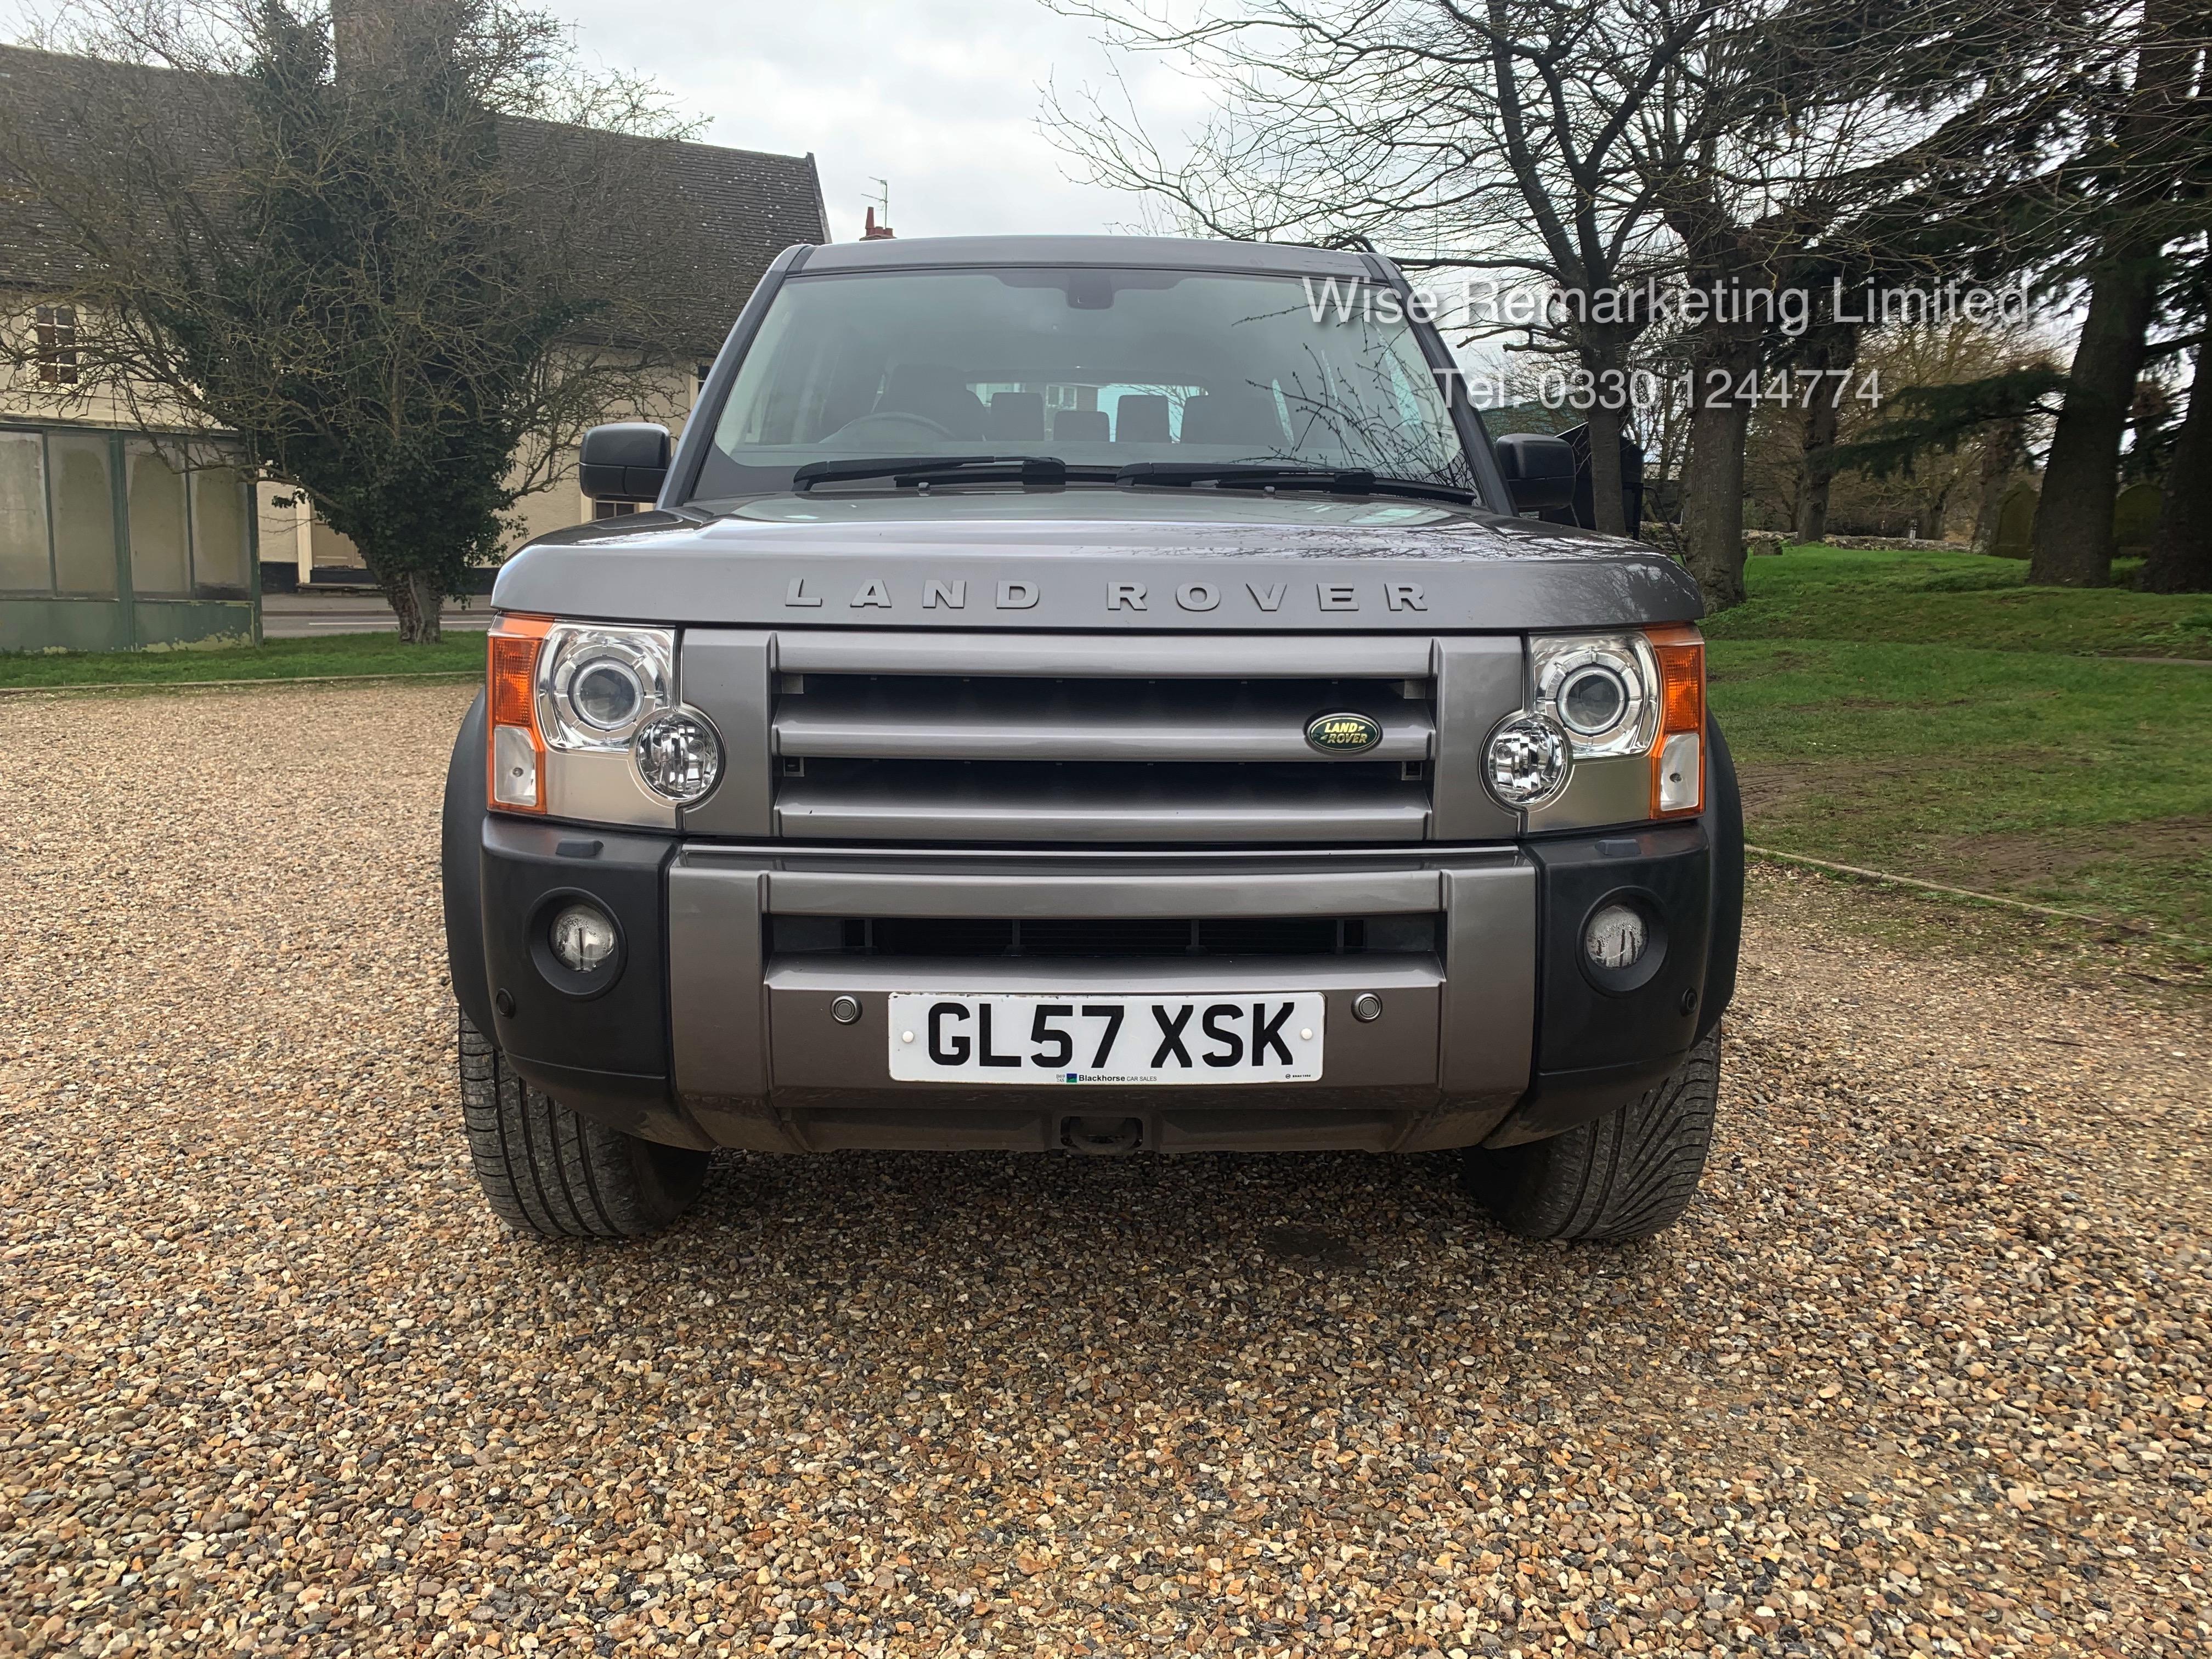 Land Rover Discovery 2.7 TDV6 HSE - Automatic - 2008 Reg - Full Leather - 7 Seater - Sat Nav - - Image 3 of 31